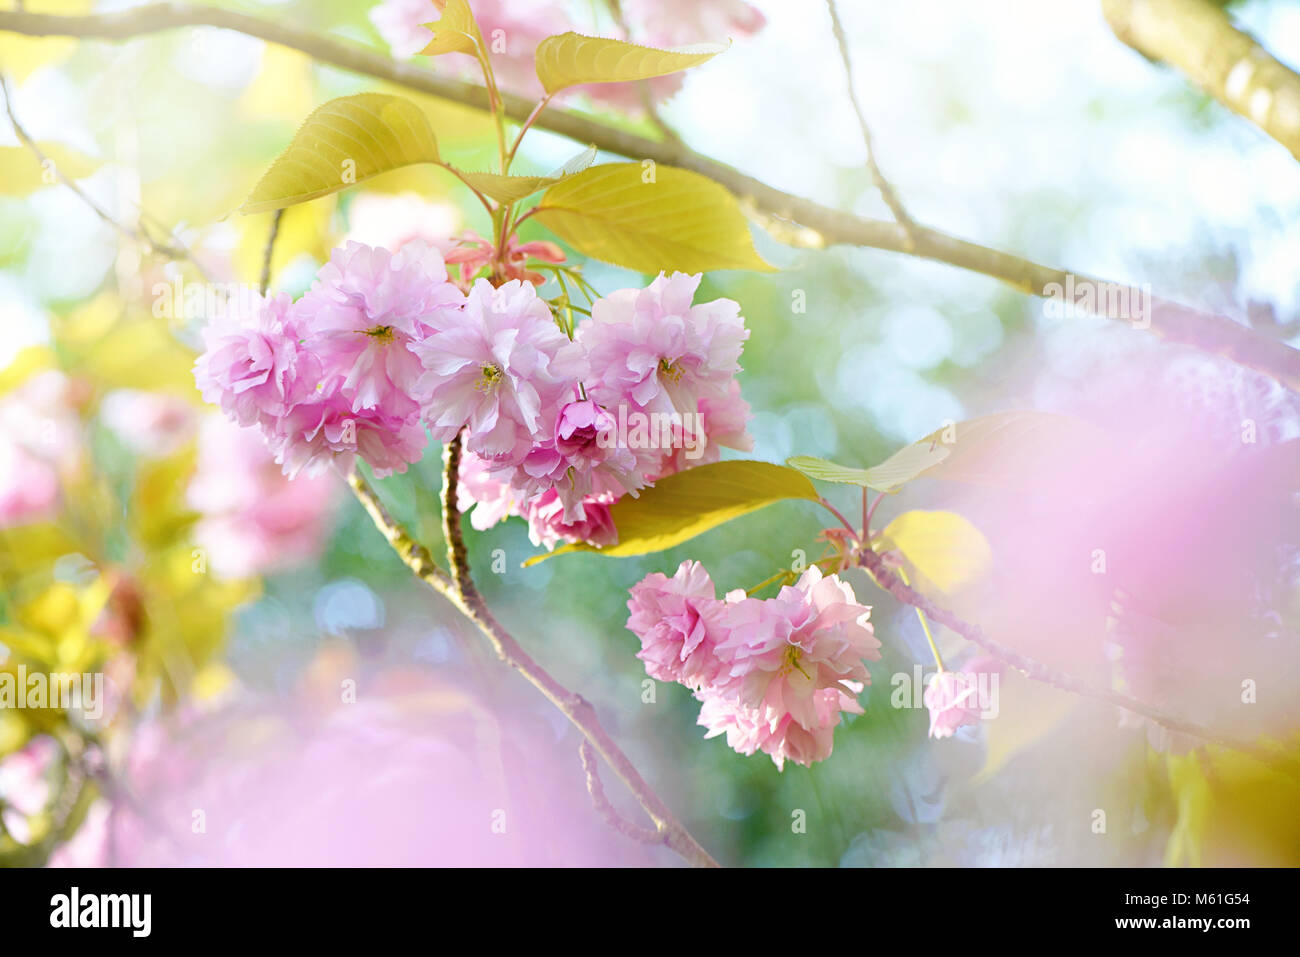 Fluffy Pink Blossom Stock Photos Fluffy Pink Blossom Stock Images